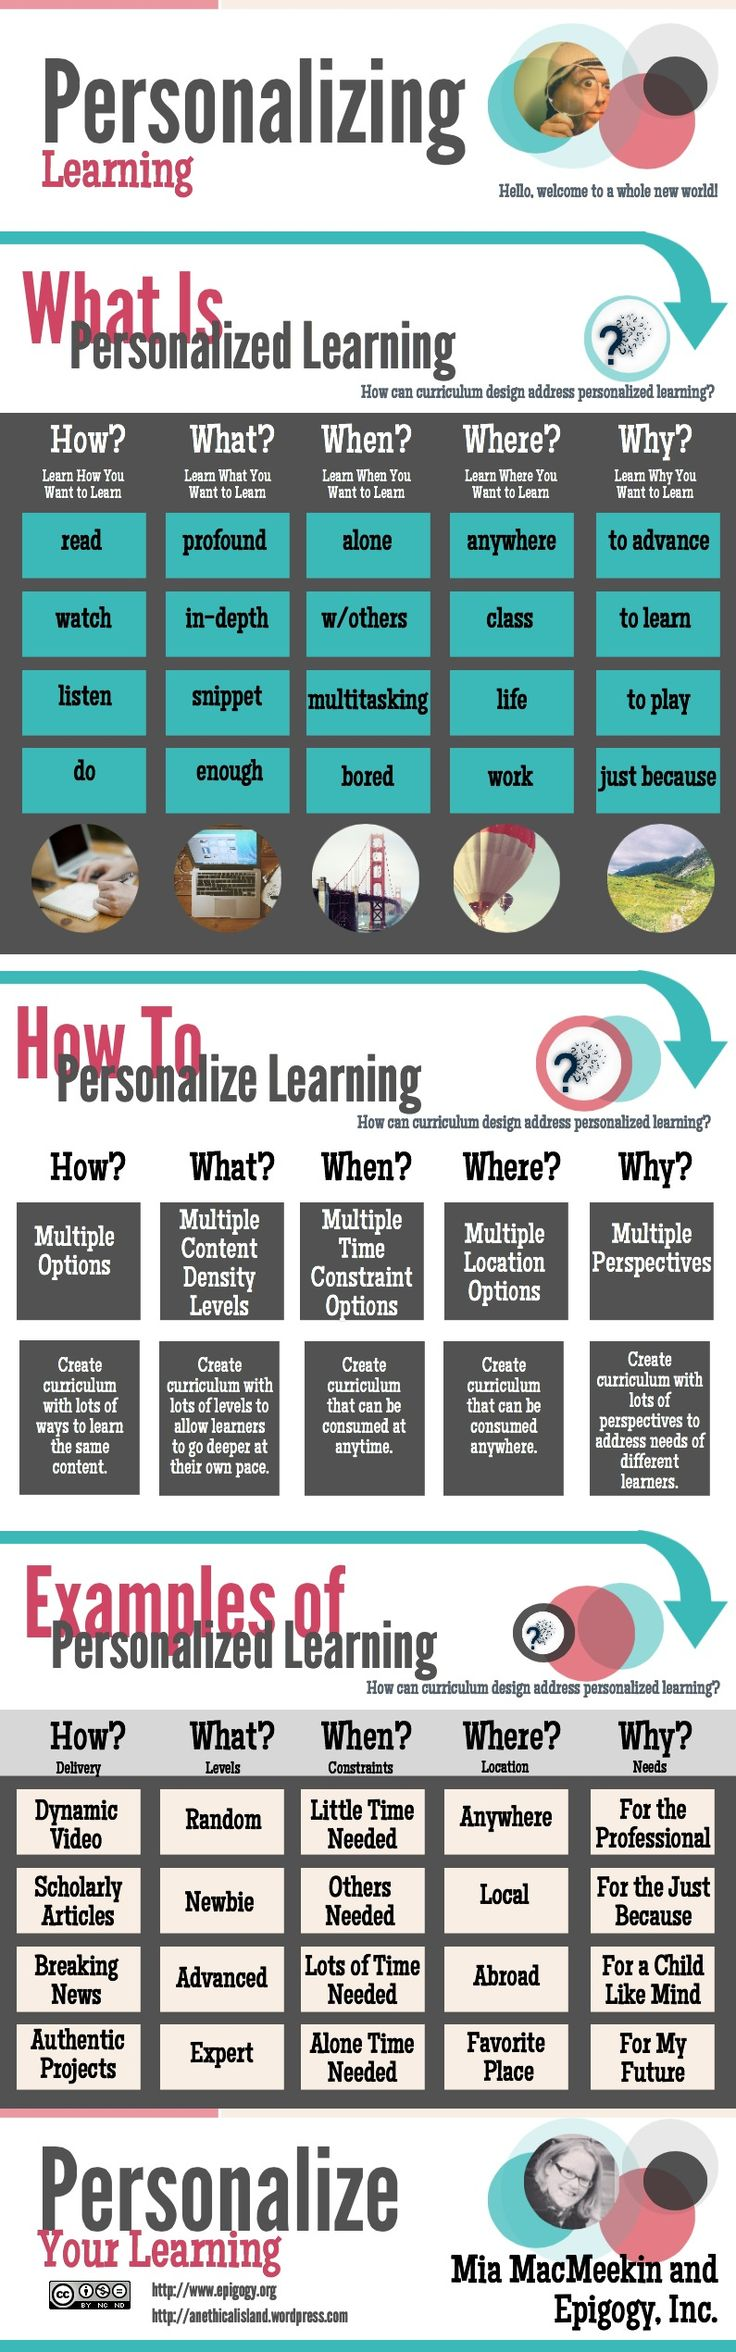 Personalized Learning Visually Explained for Teachers. One of the biggest affordances of technology is towards the enhancement of the concept of personalized learning.